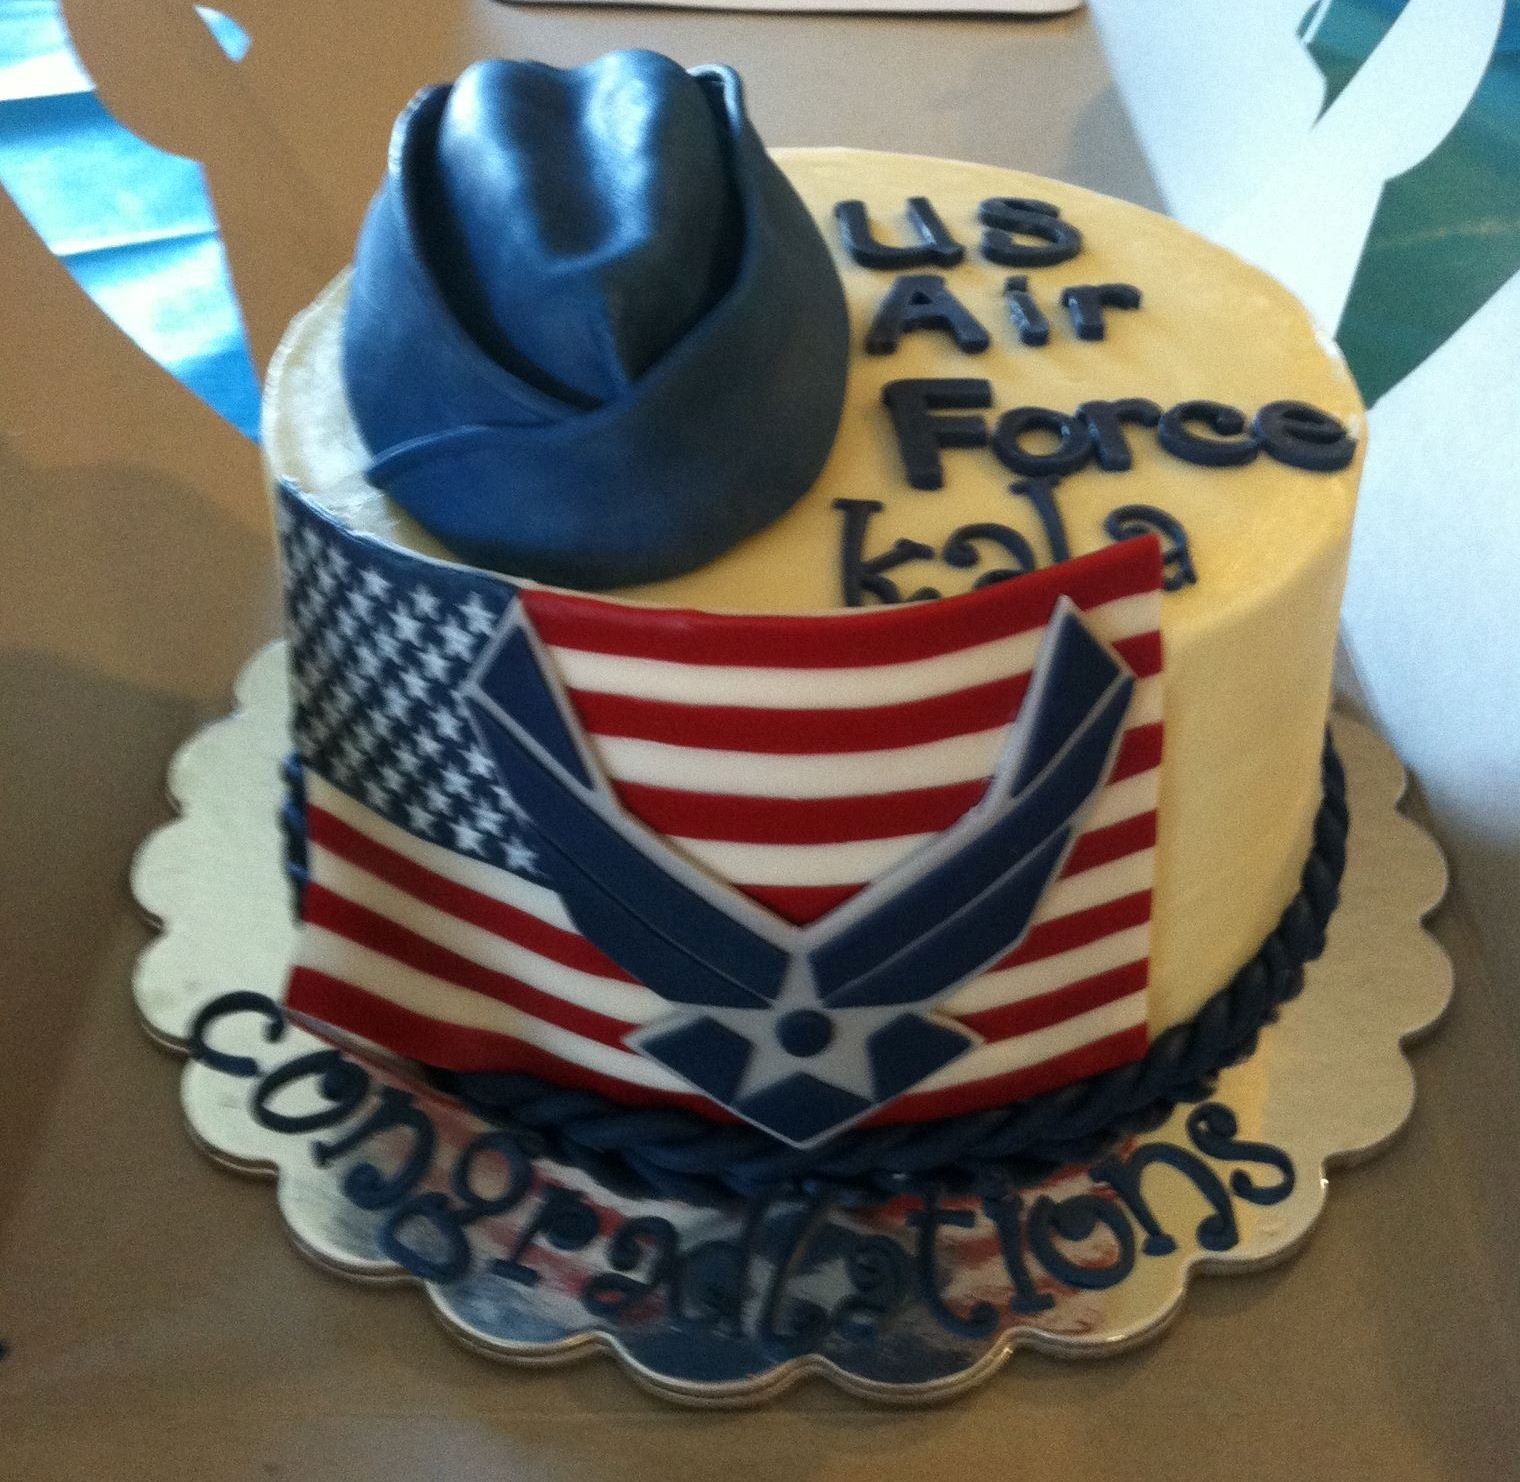 Us air force cake for a friends daughter kayla will be for Air force cakes decoration